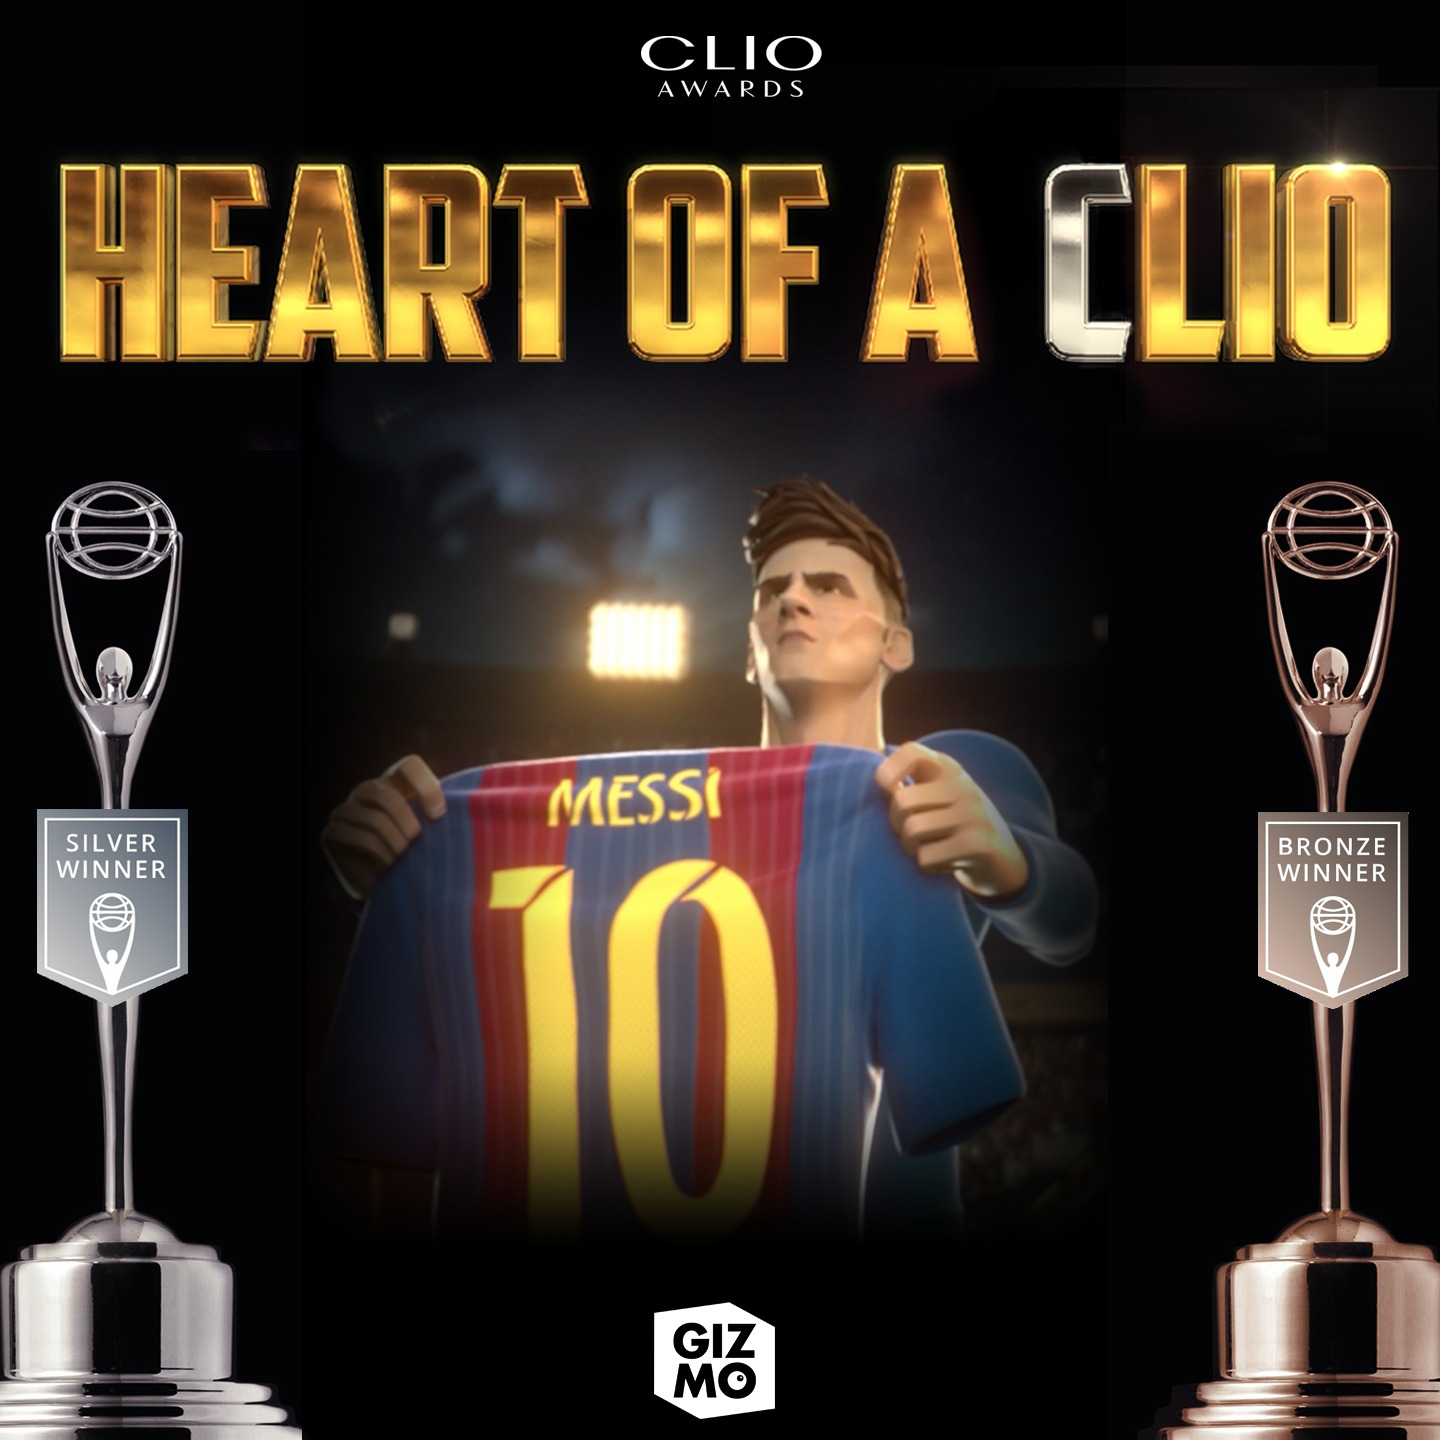 HEART OF A LIO WINNER OF #CLIOAWARDS!!!